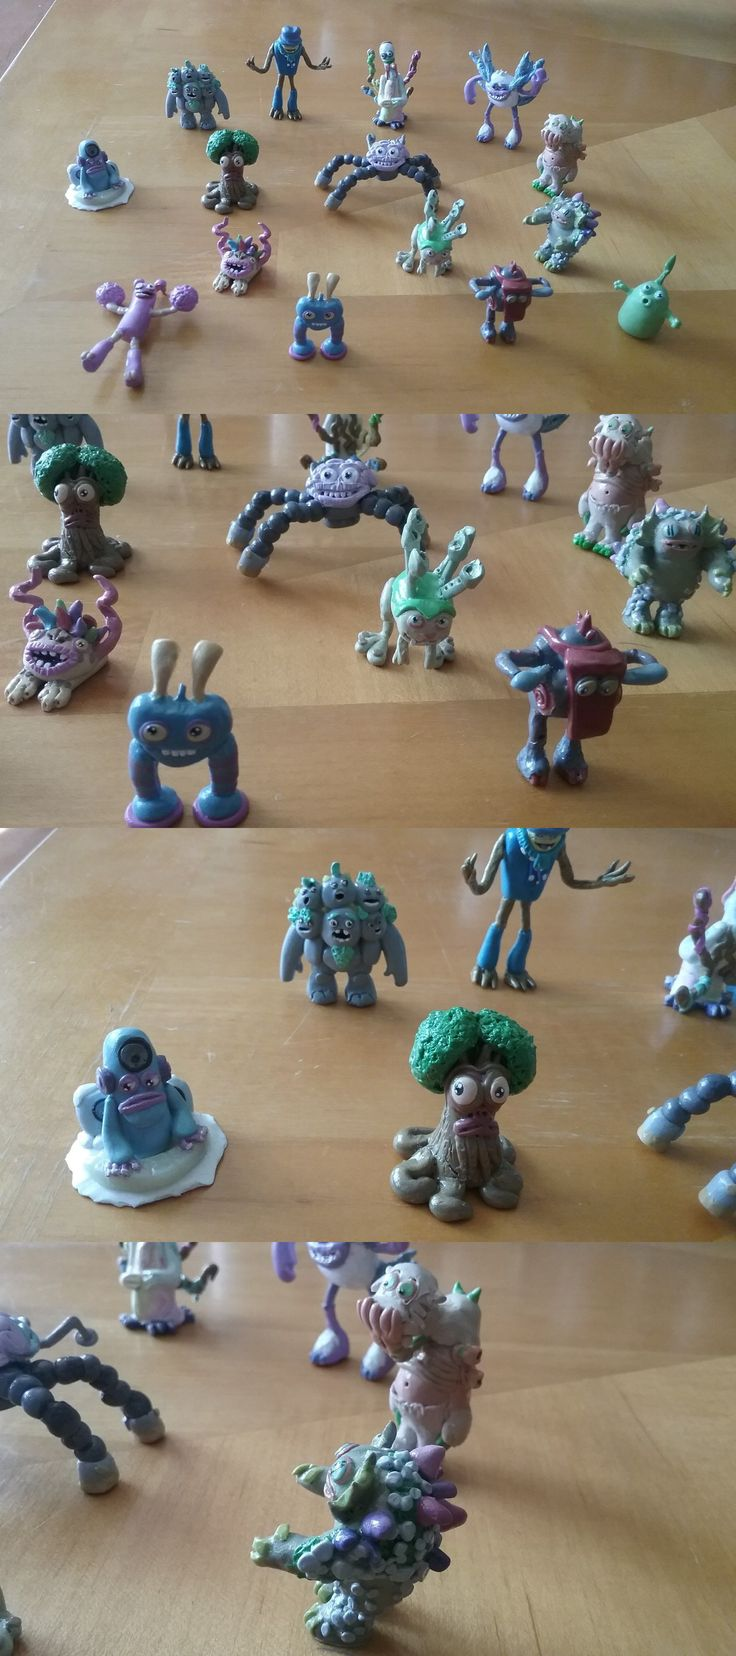 Other Stuffed Animals 230: My Singing Monsters Figures * Rare* -> BUY IT NOW ONLY: $150 on eBay!